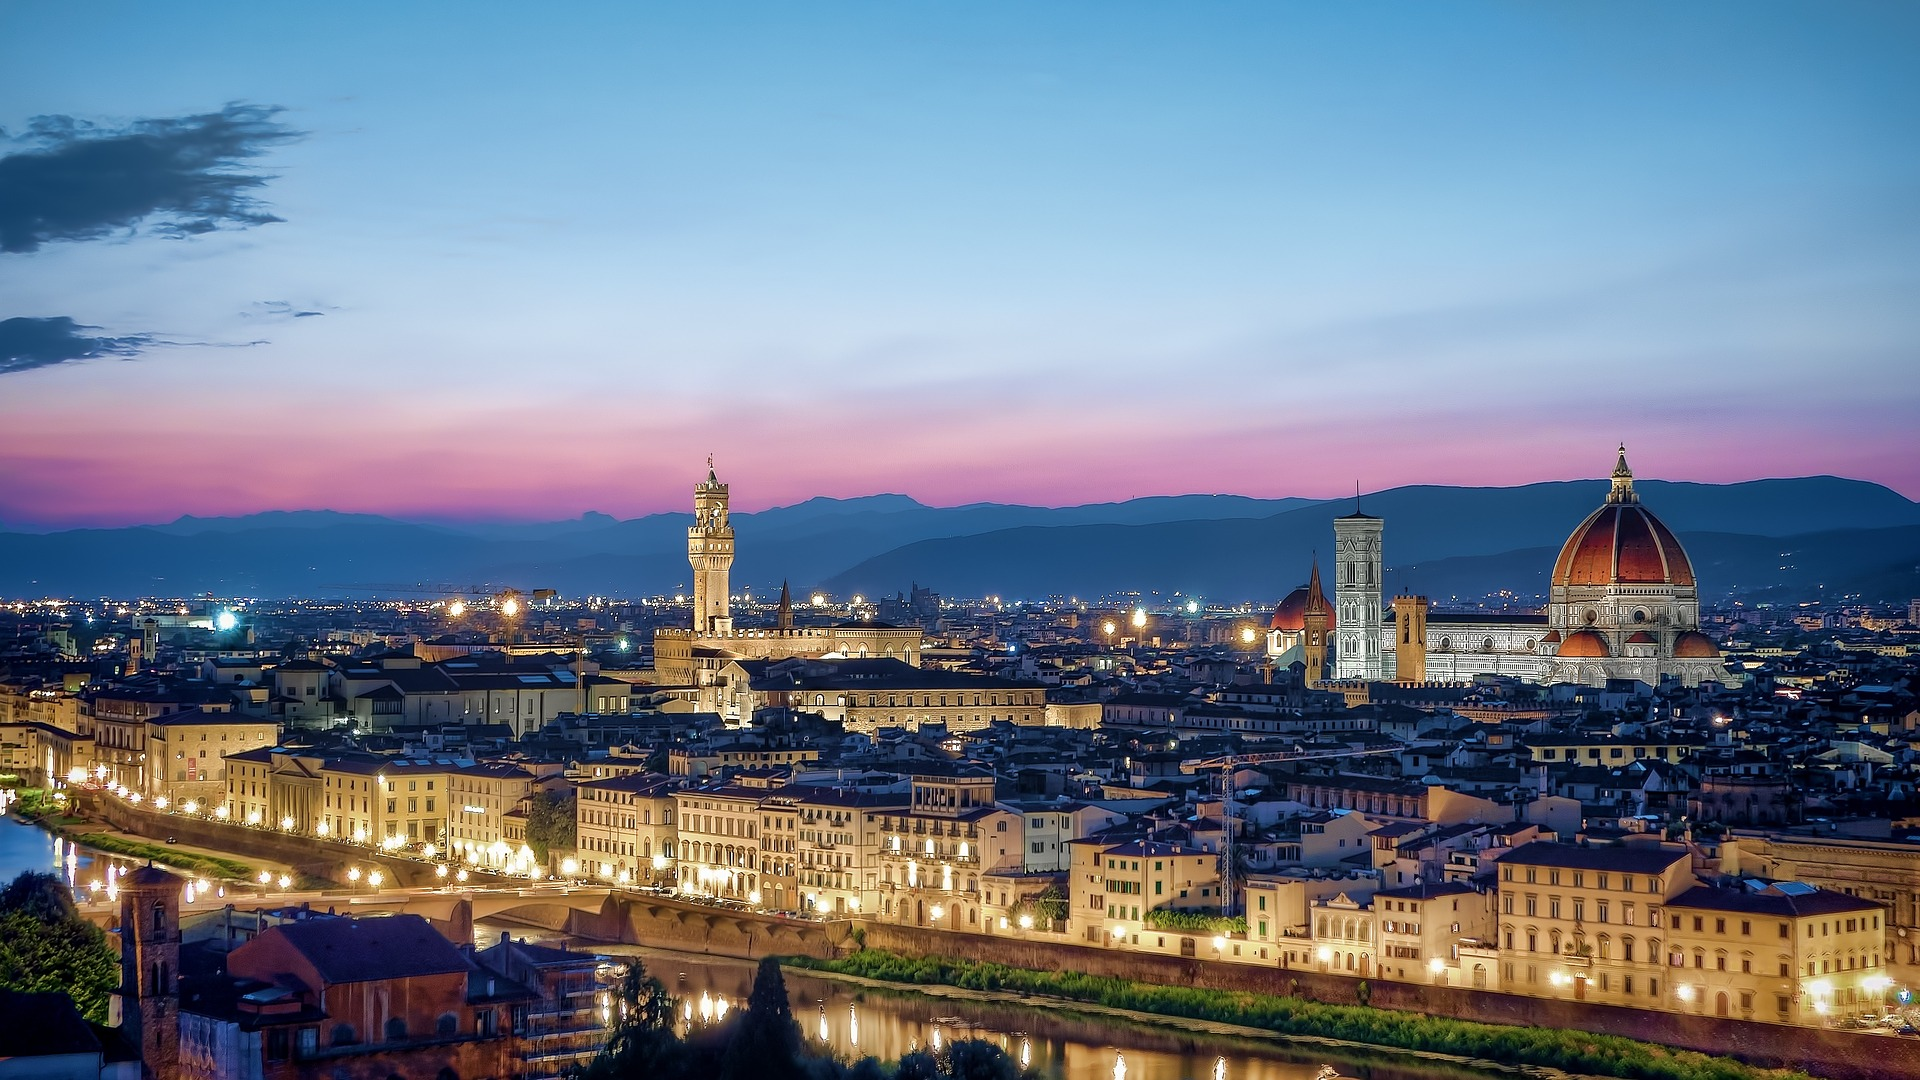 Florence at night with sunset